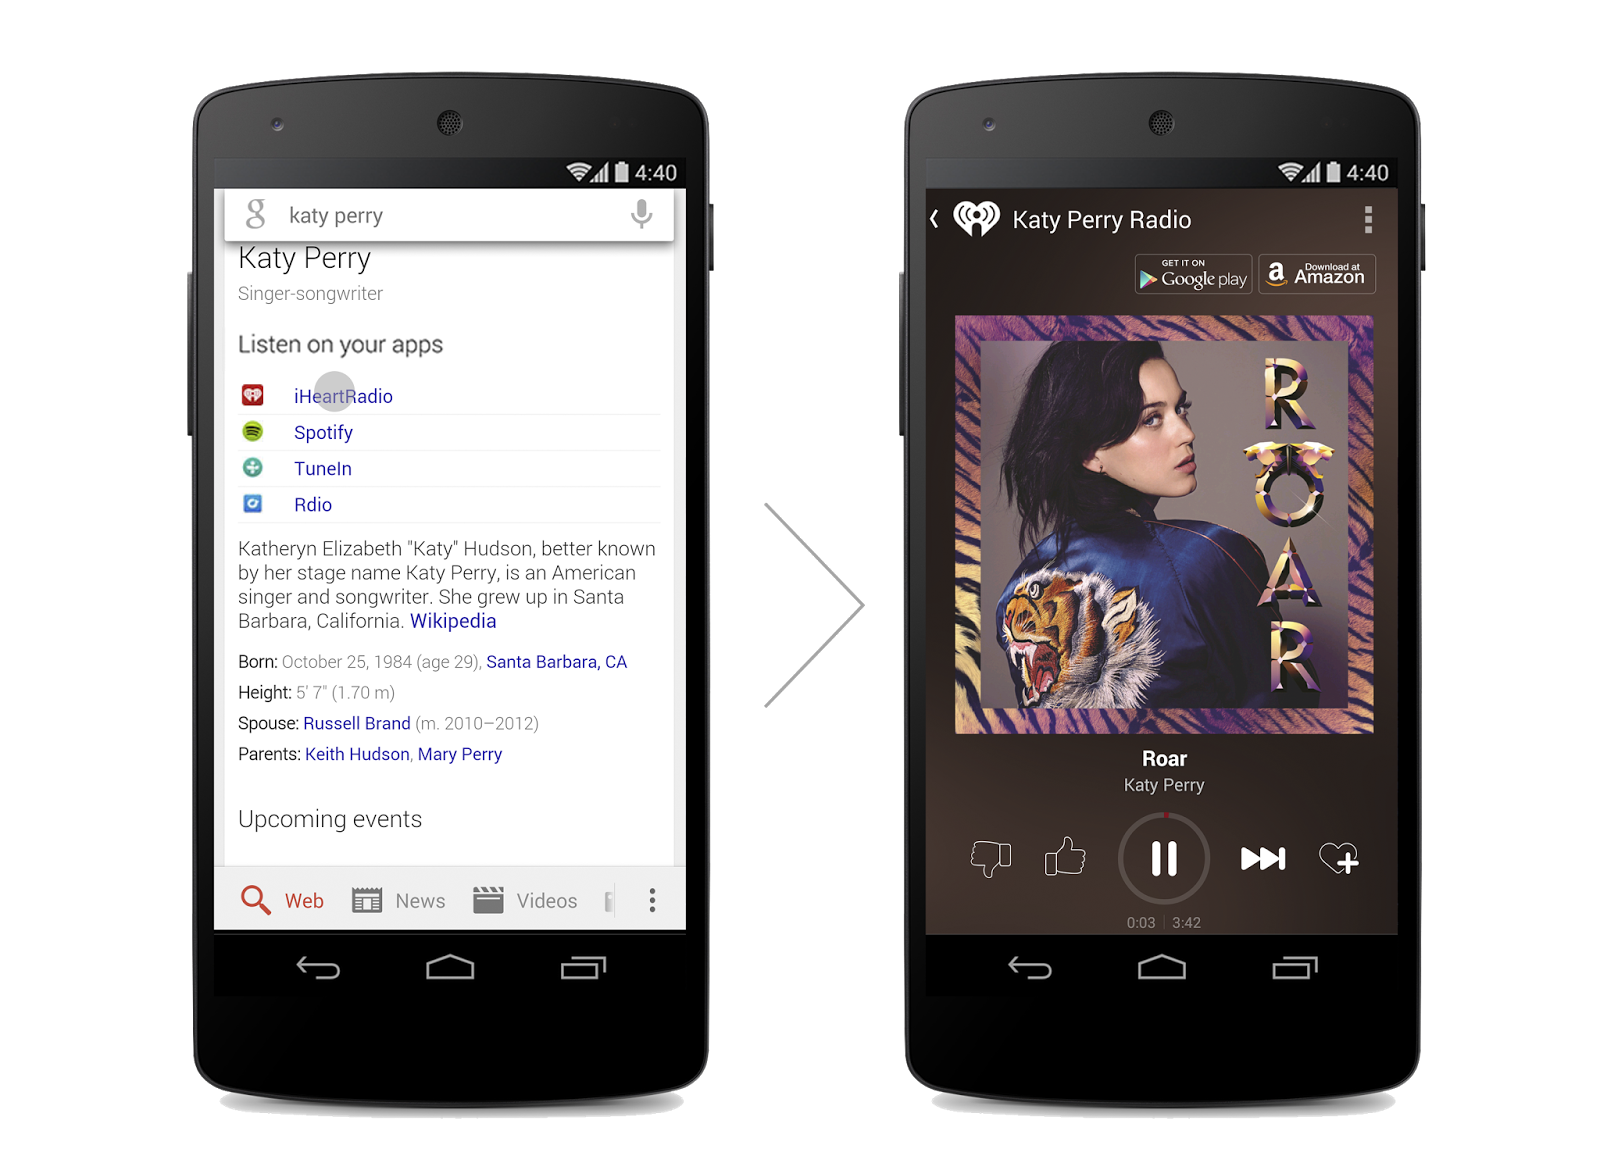 Muziek downloads en streams direct luisteren via Google